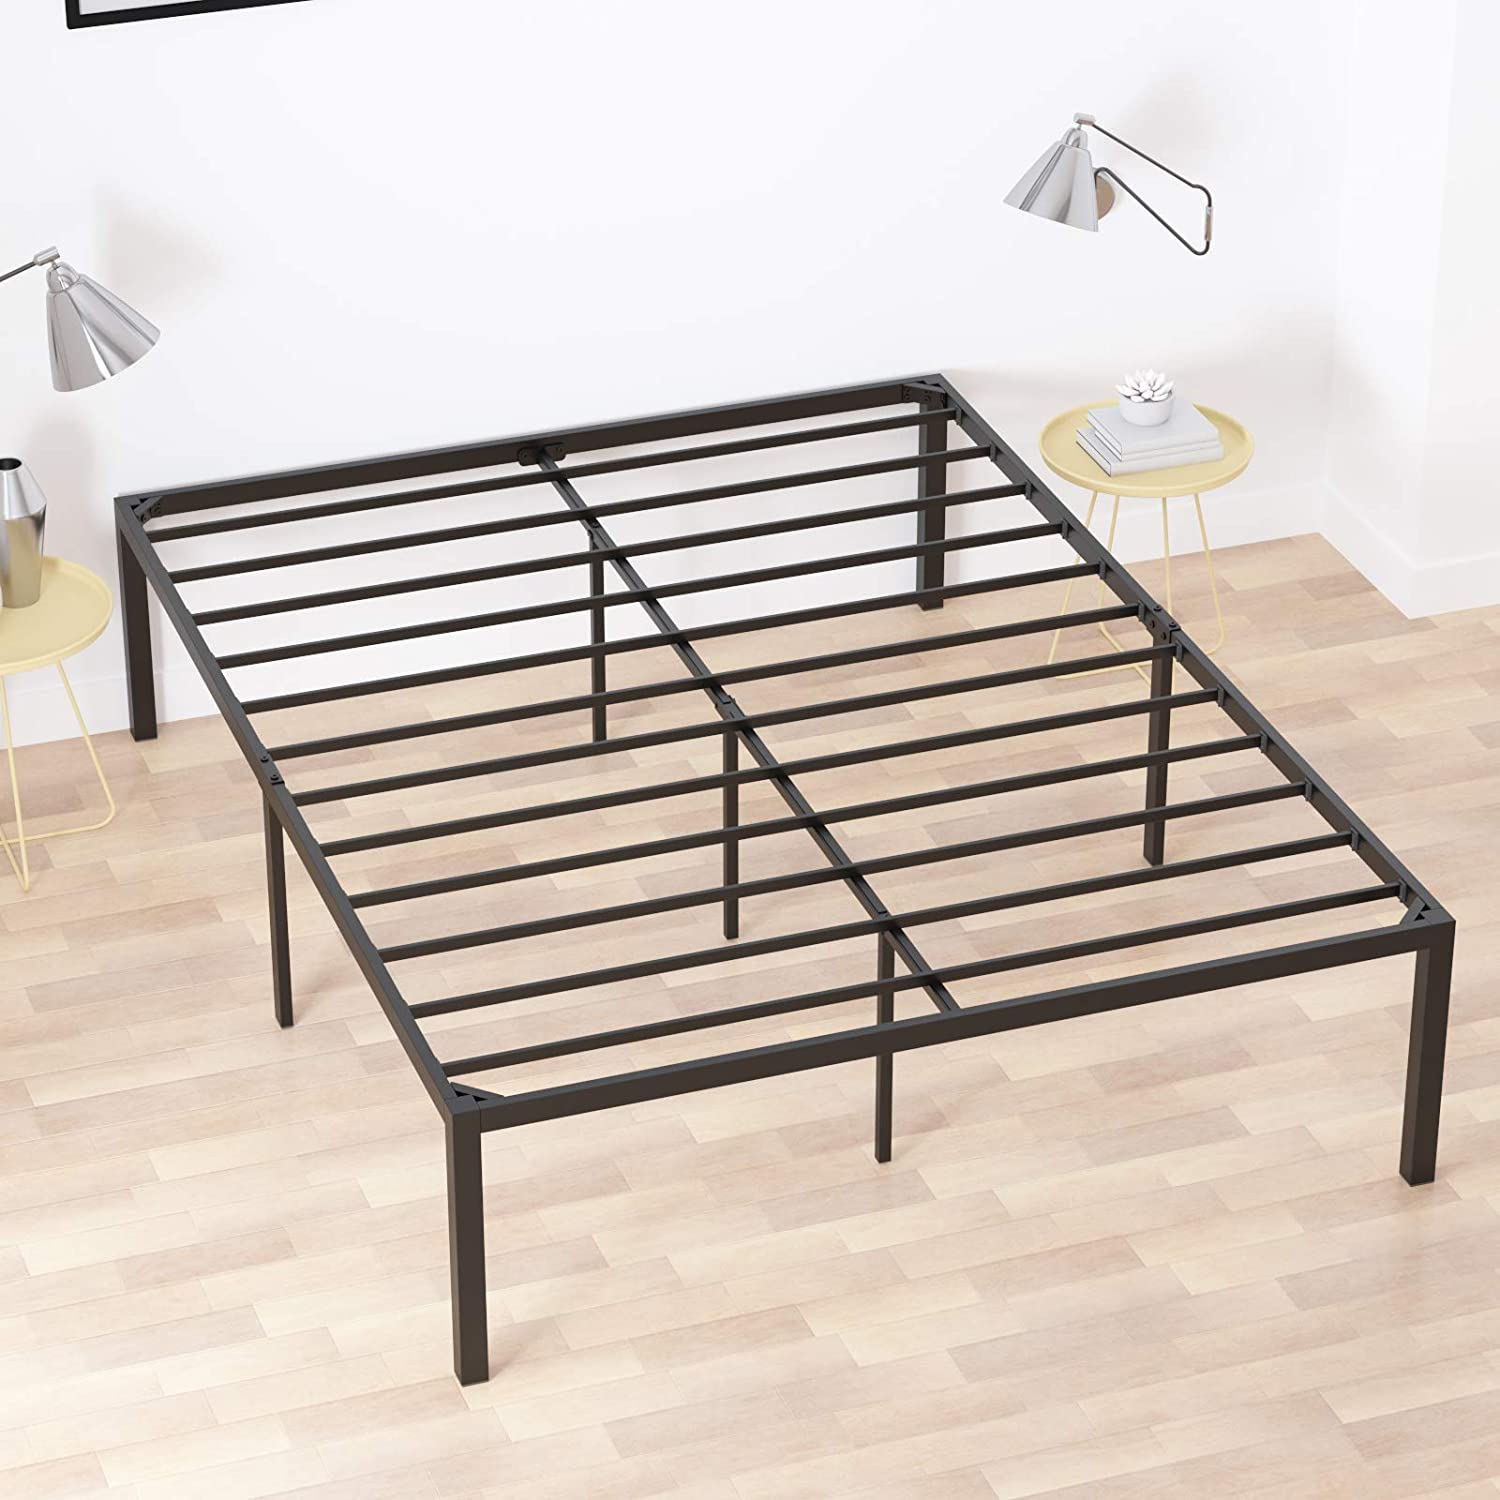 Elephance 18 Inch Metal Platform Bed Frame with Heavy Duty Steel Slat Support No Box Spring Needed Easy Assembly